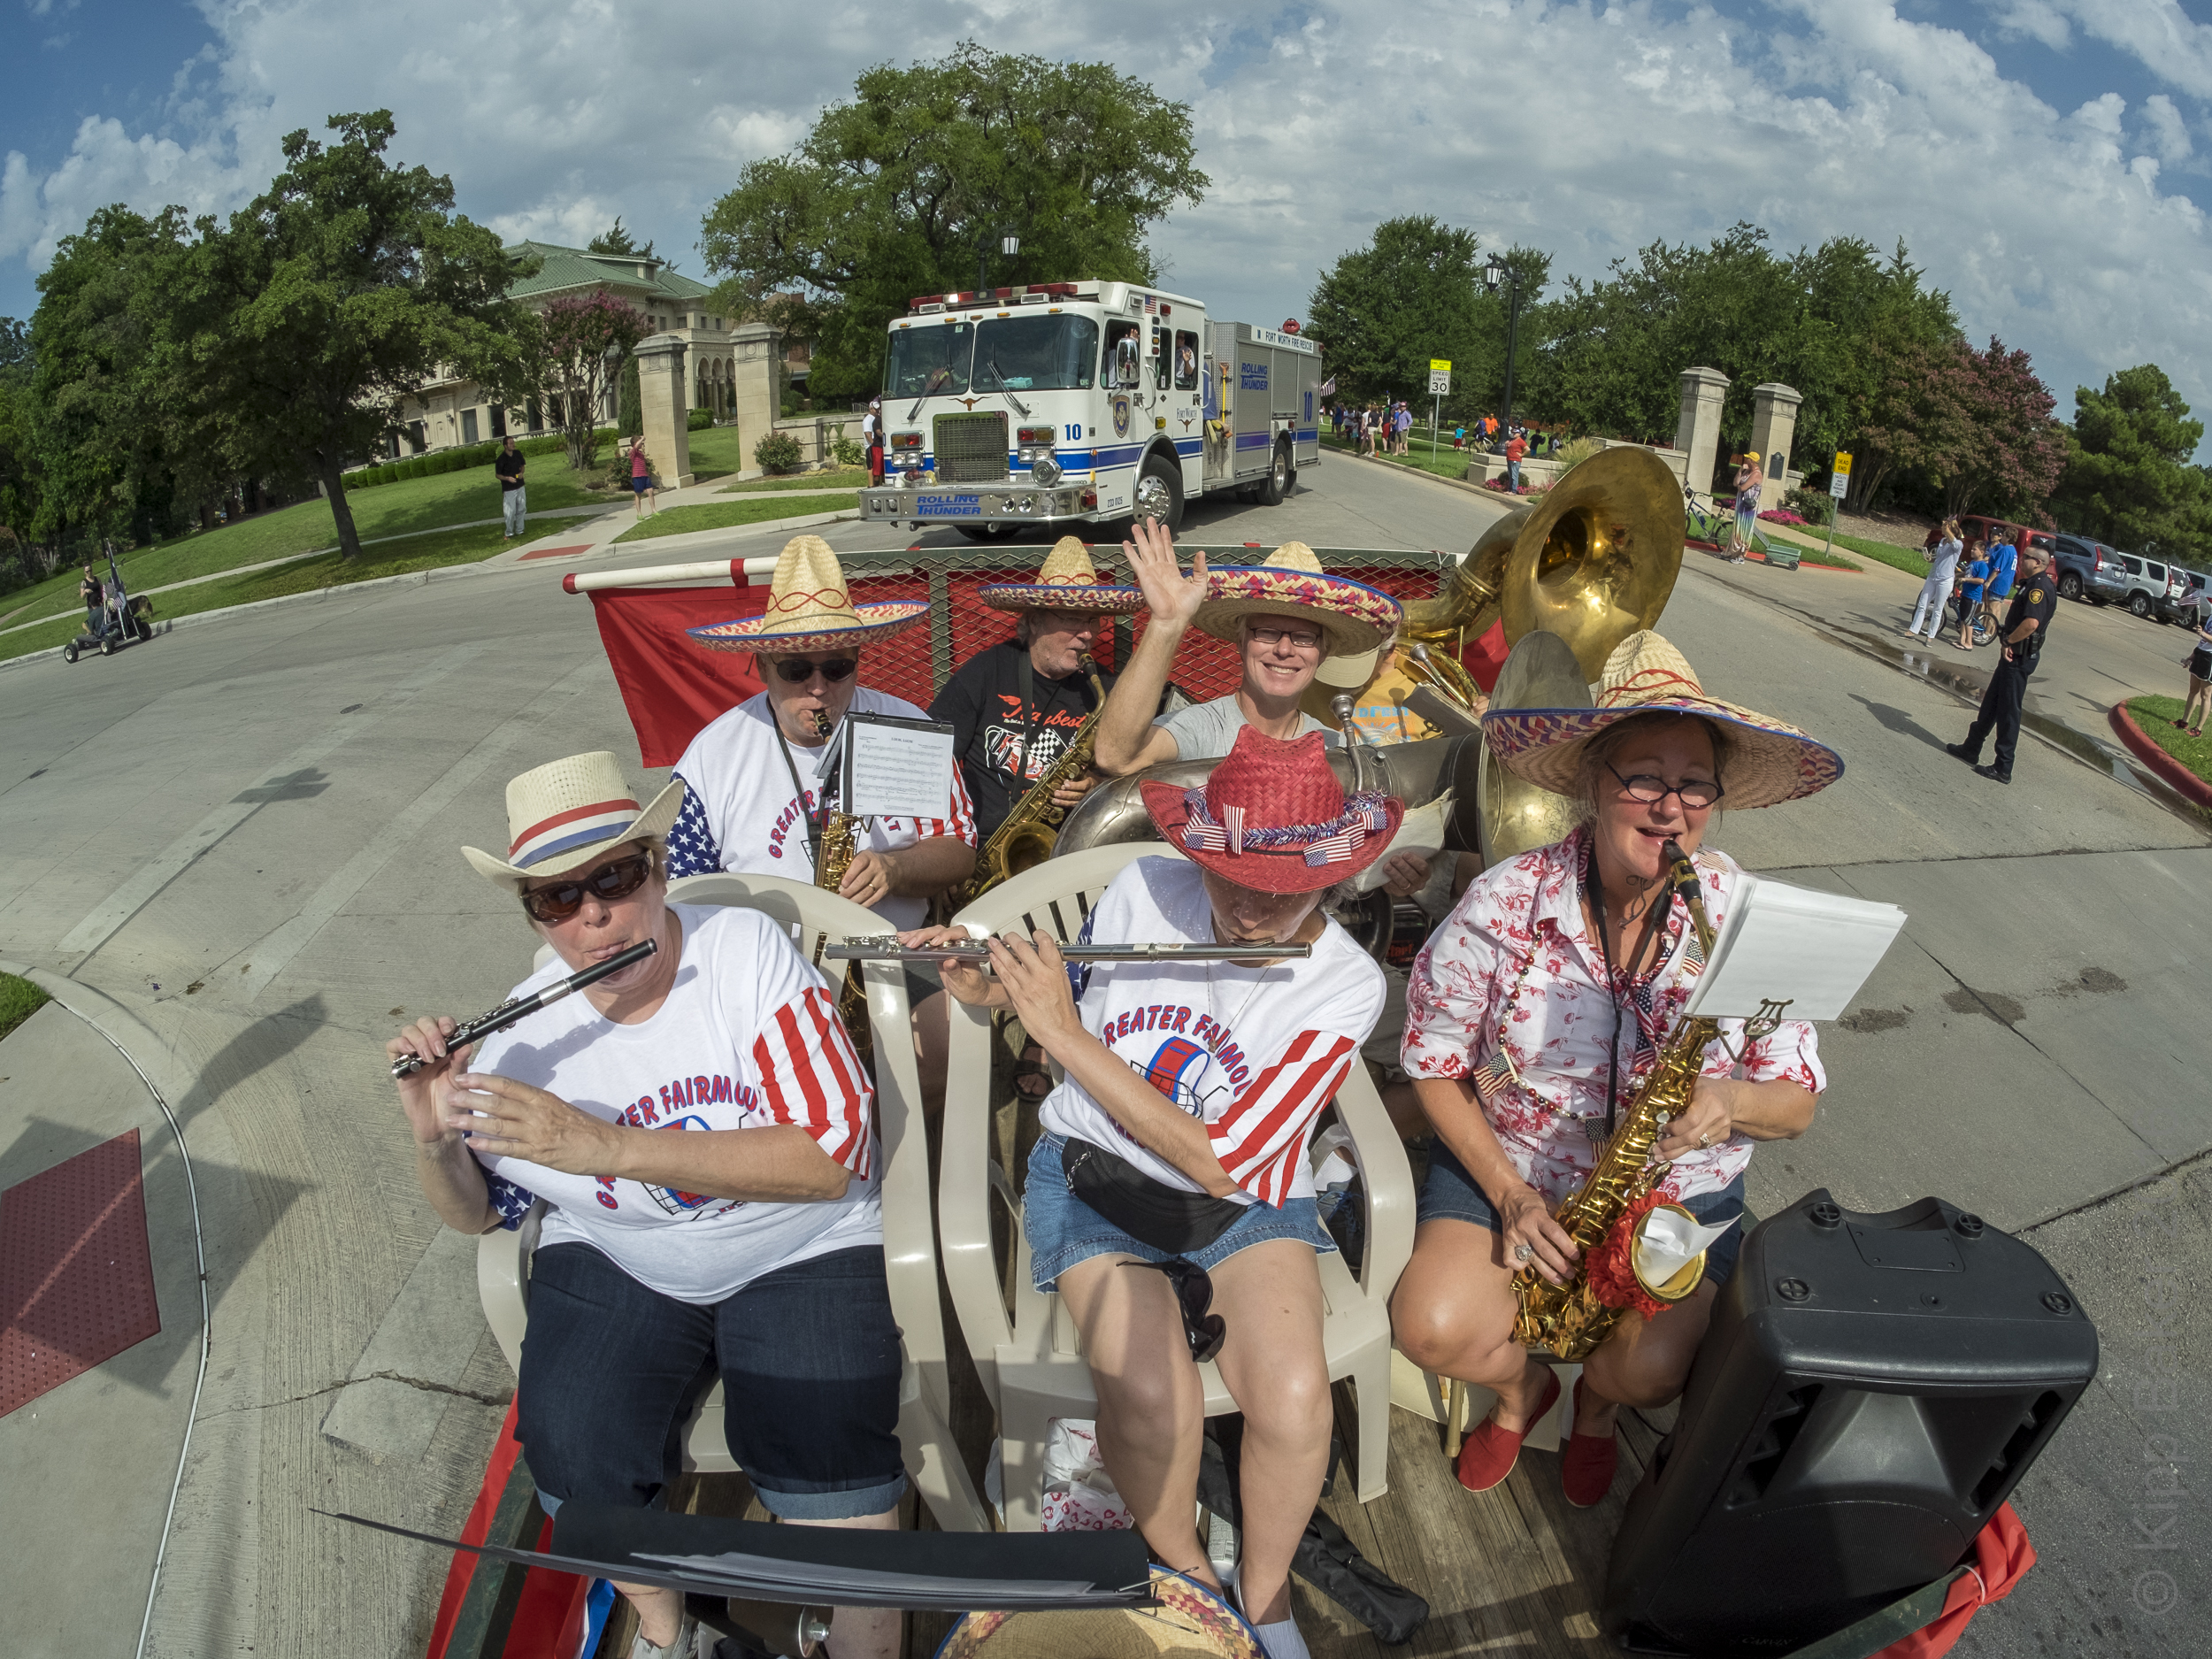 Musicians celebrate July 4th in Ryan Place Parade Copyright © Kipp Baker, All rights reserved.